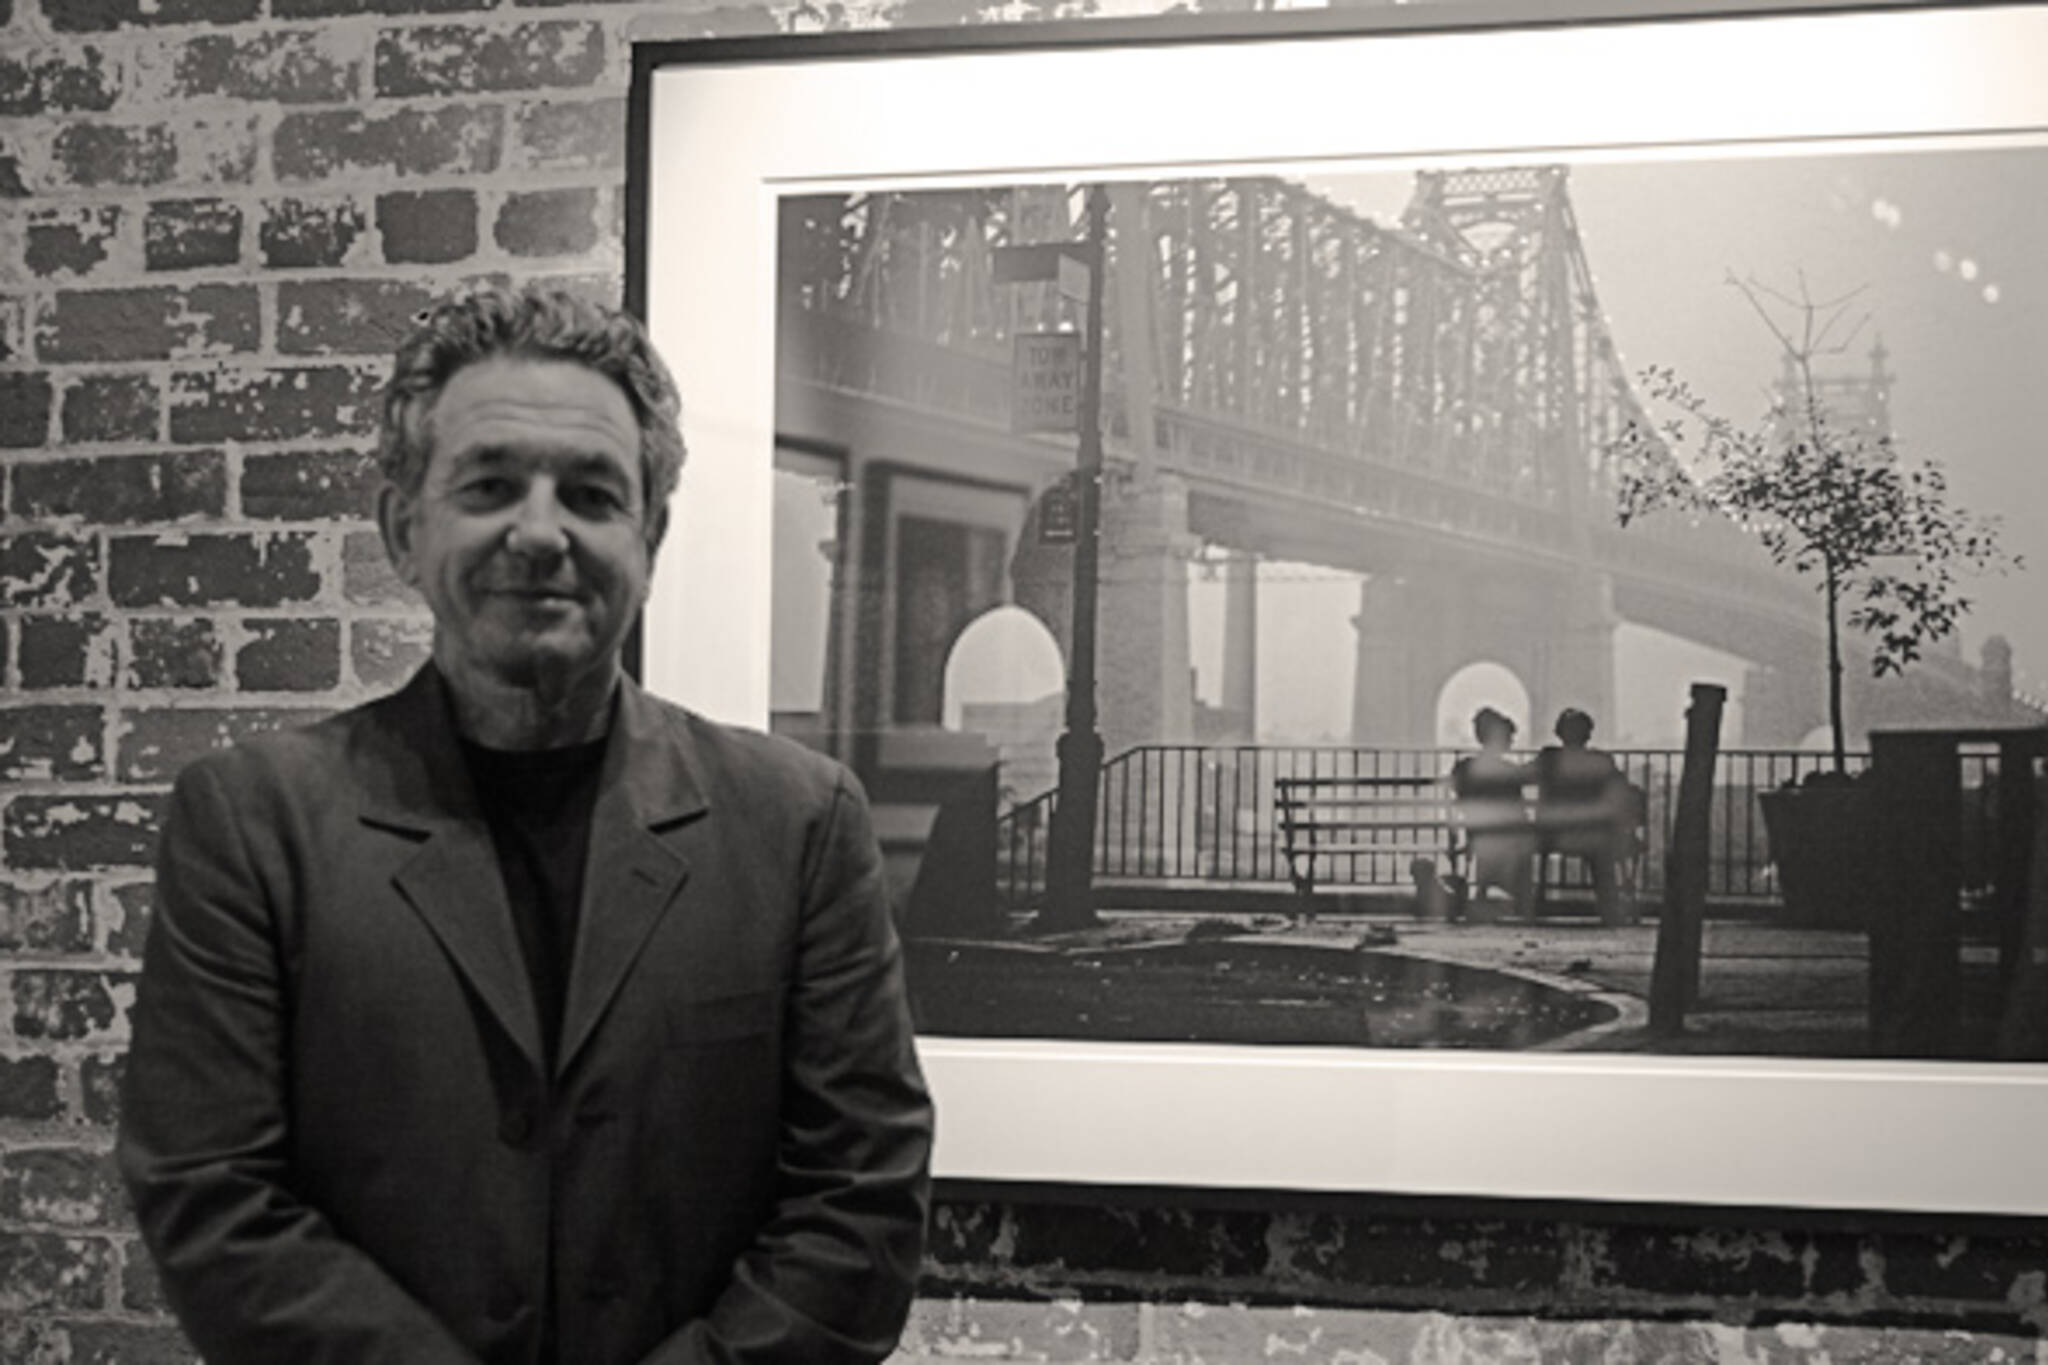 Film stills photographer Brian Hamill by his iconic shot from Woody Allen's Manhattan